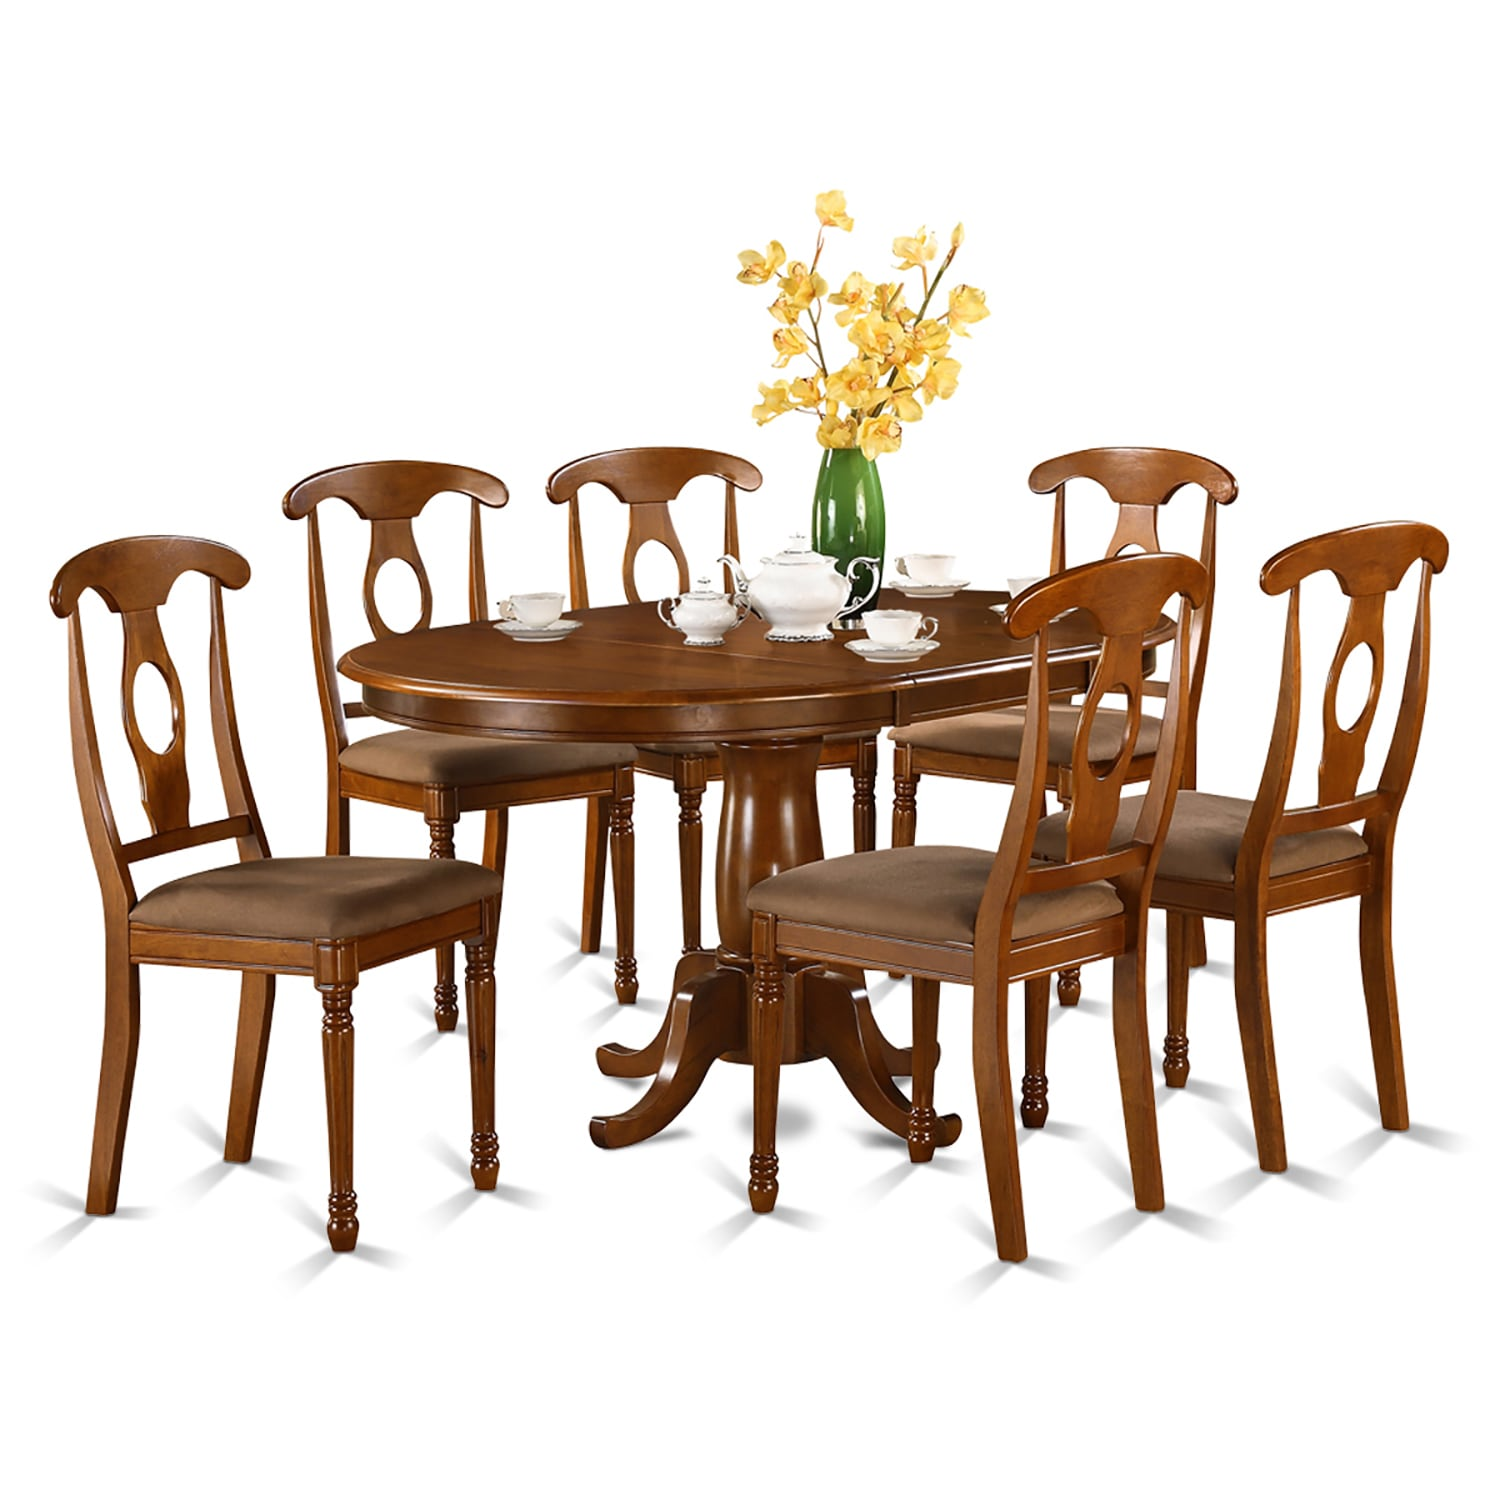 7-piece and Oval Dining Table with Leaf and 6 Dining Chai...